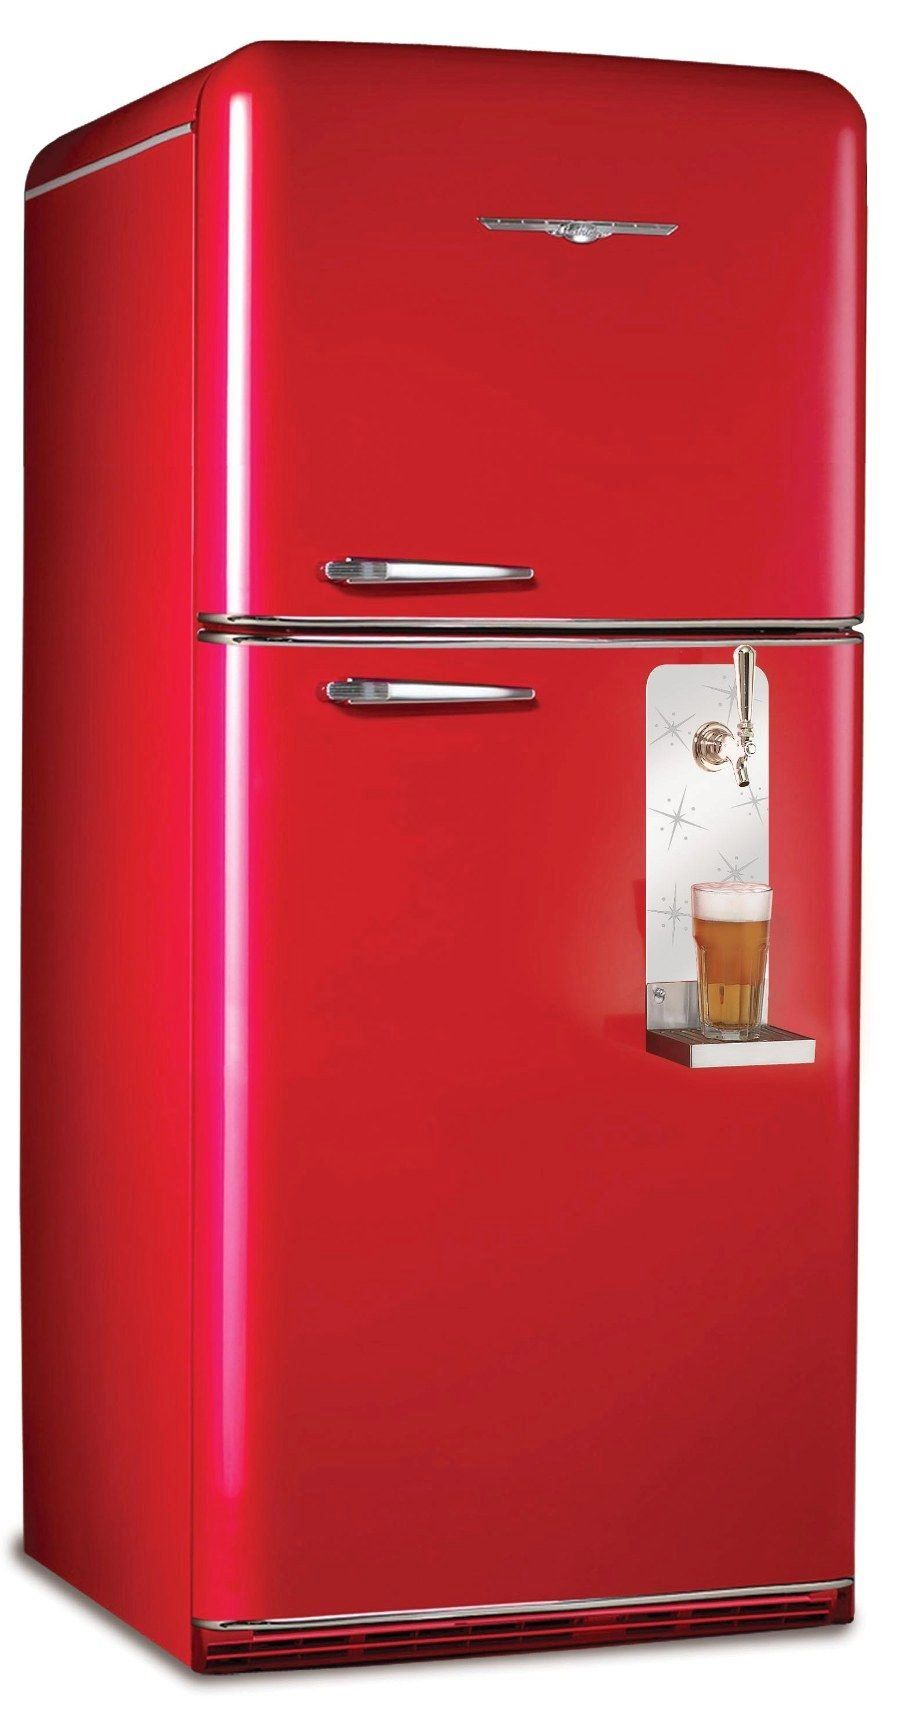 Amazing Modern Fridges Made To Look Like 1950 S Models They Even Have Matching 1000 In 2020 Retro Refrigerator Retro Fridge Vintage Appliances